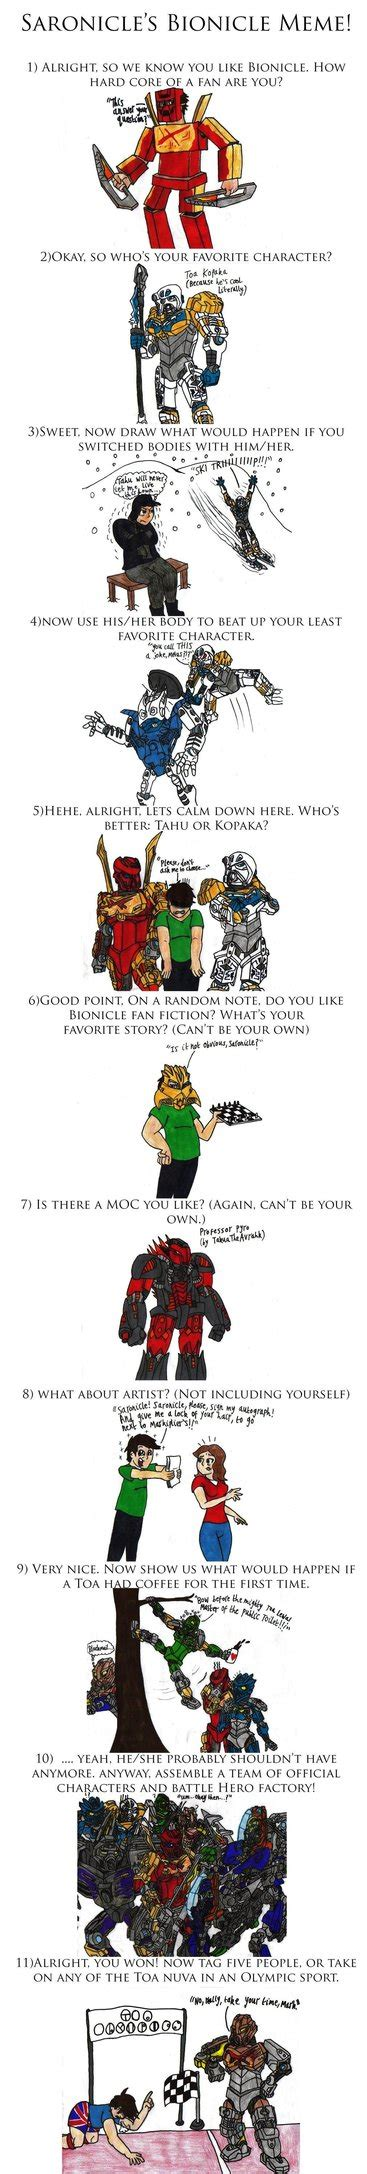 Bionicle Memes Bionicle Meme By Saronicle By Krytenmarkgen 0 On Deviantart